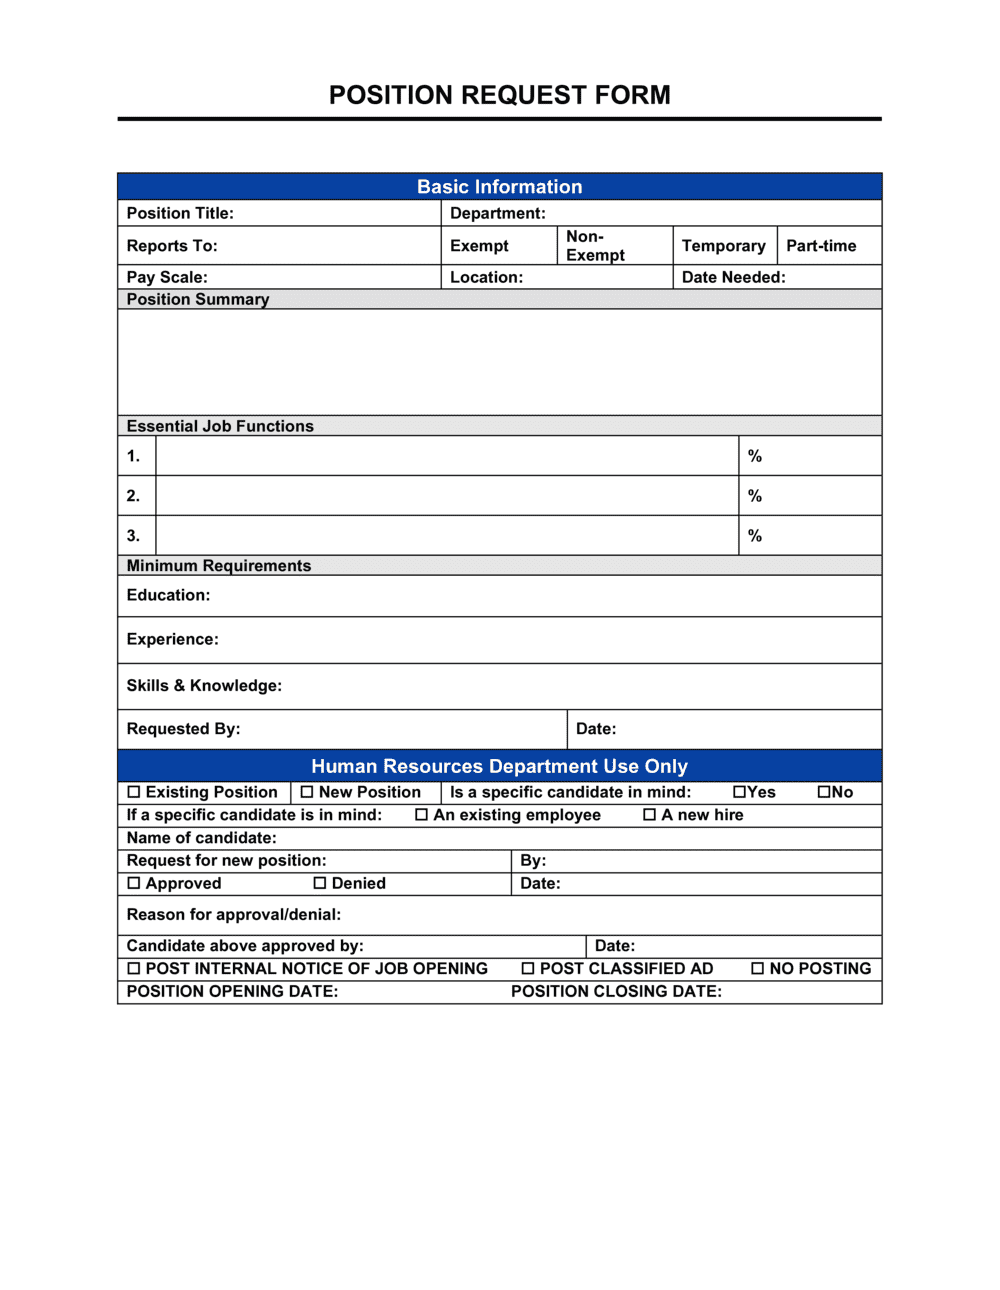 Business-in-a-Box's Position Request Form Template